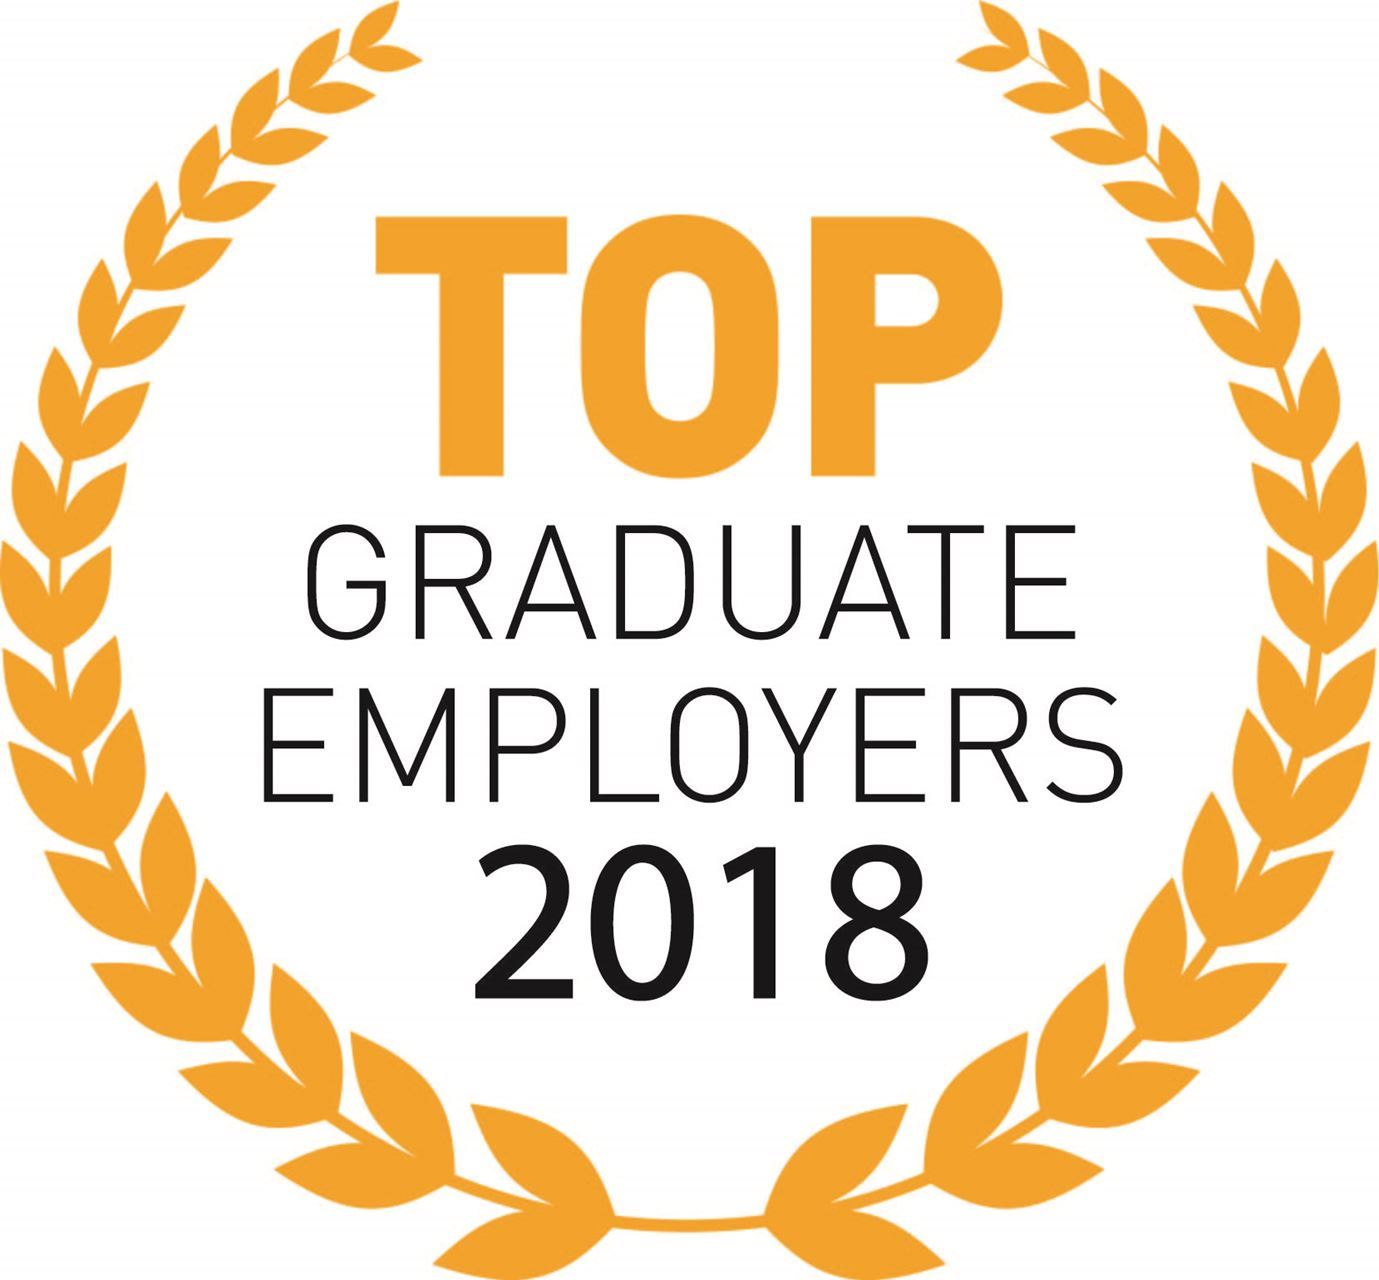 Top Graduate Employers 2018